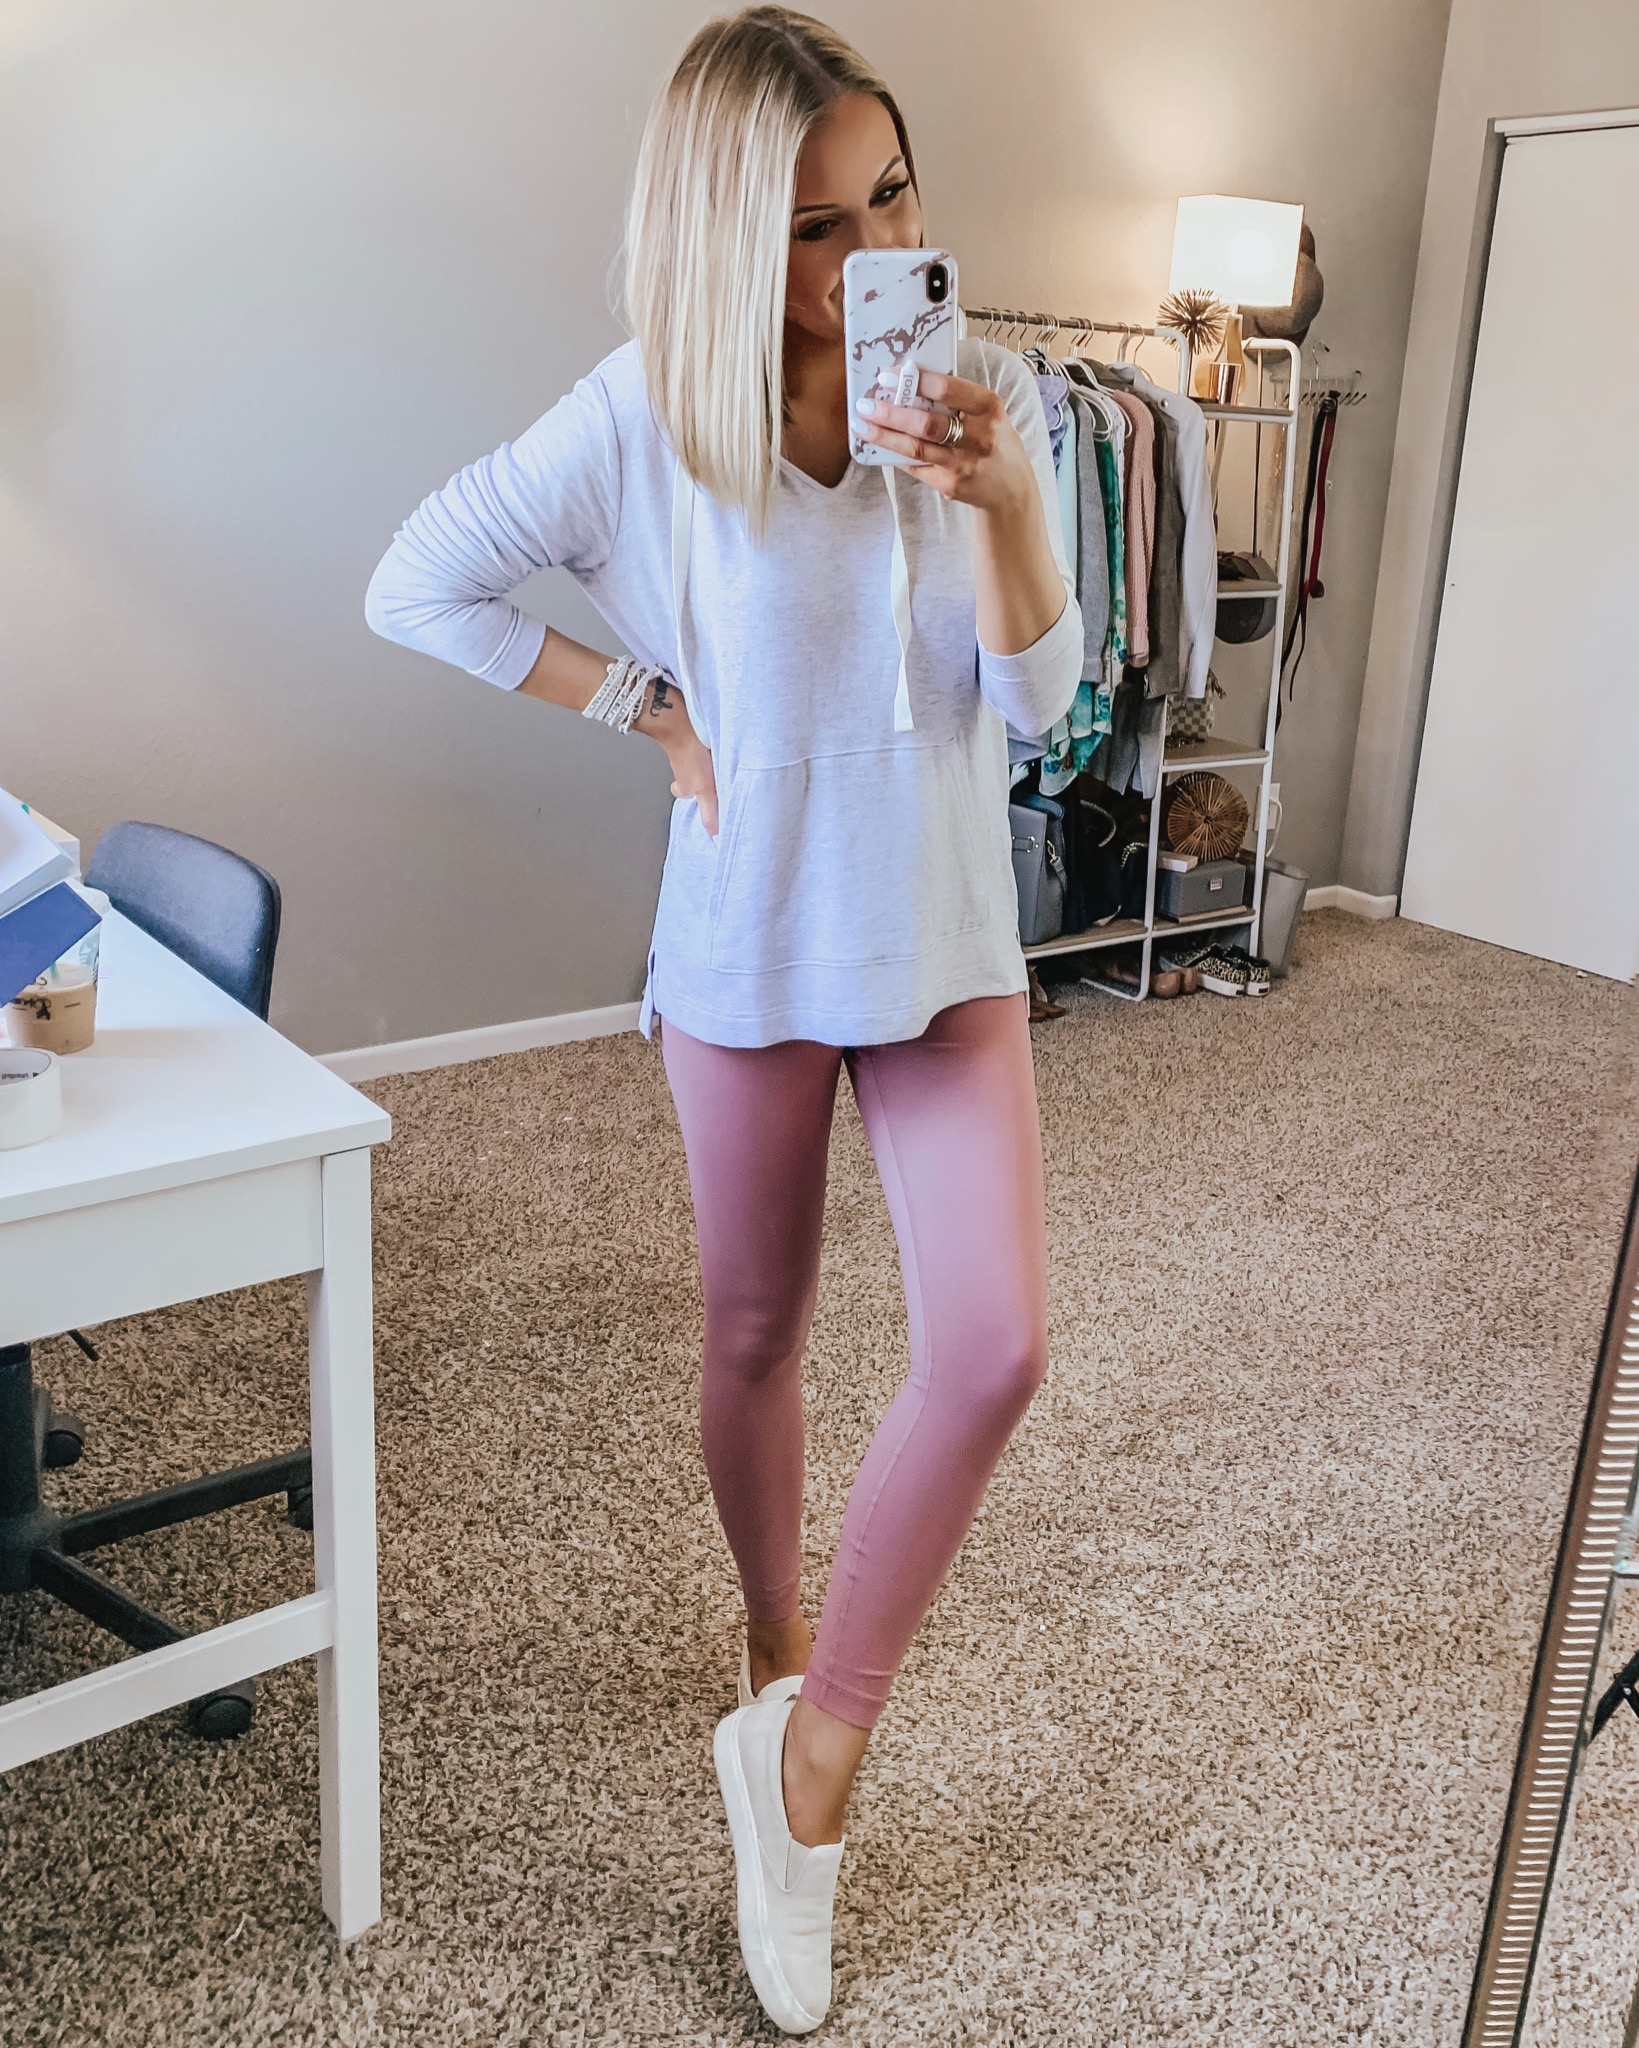 Cute & Affordable Spring Outfits! April Instagram Round Up Week 4 + Weekend Sales! Style Blogger Lauren Meyer shares an Instagram Round Up + Weekend Sales!